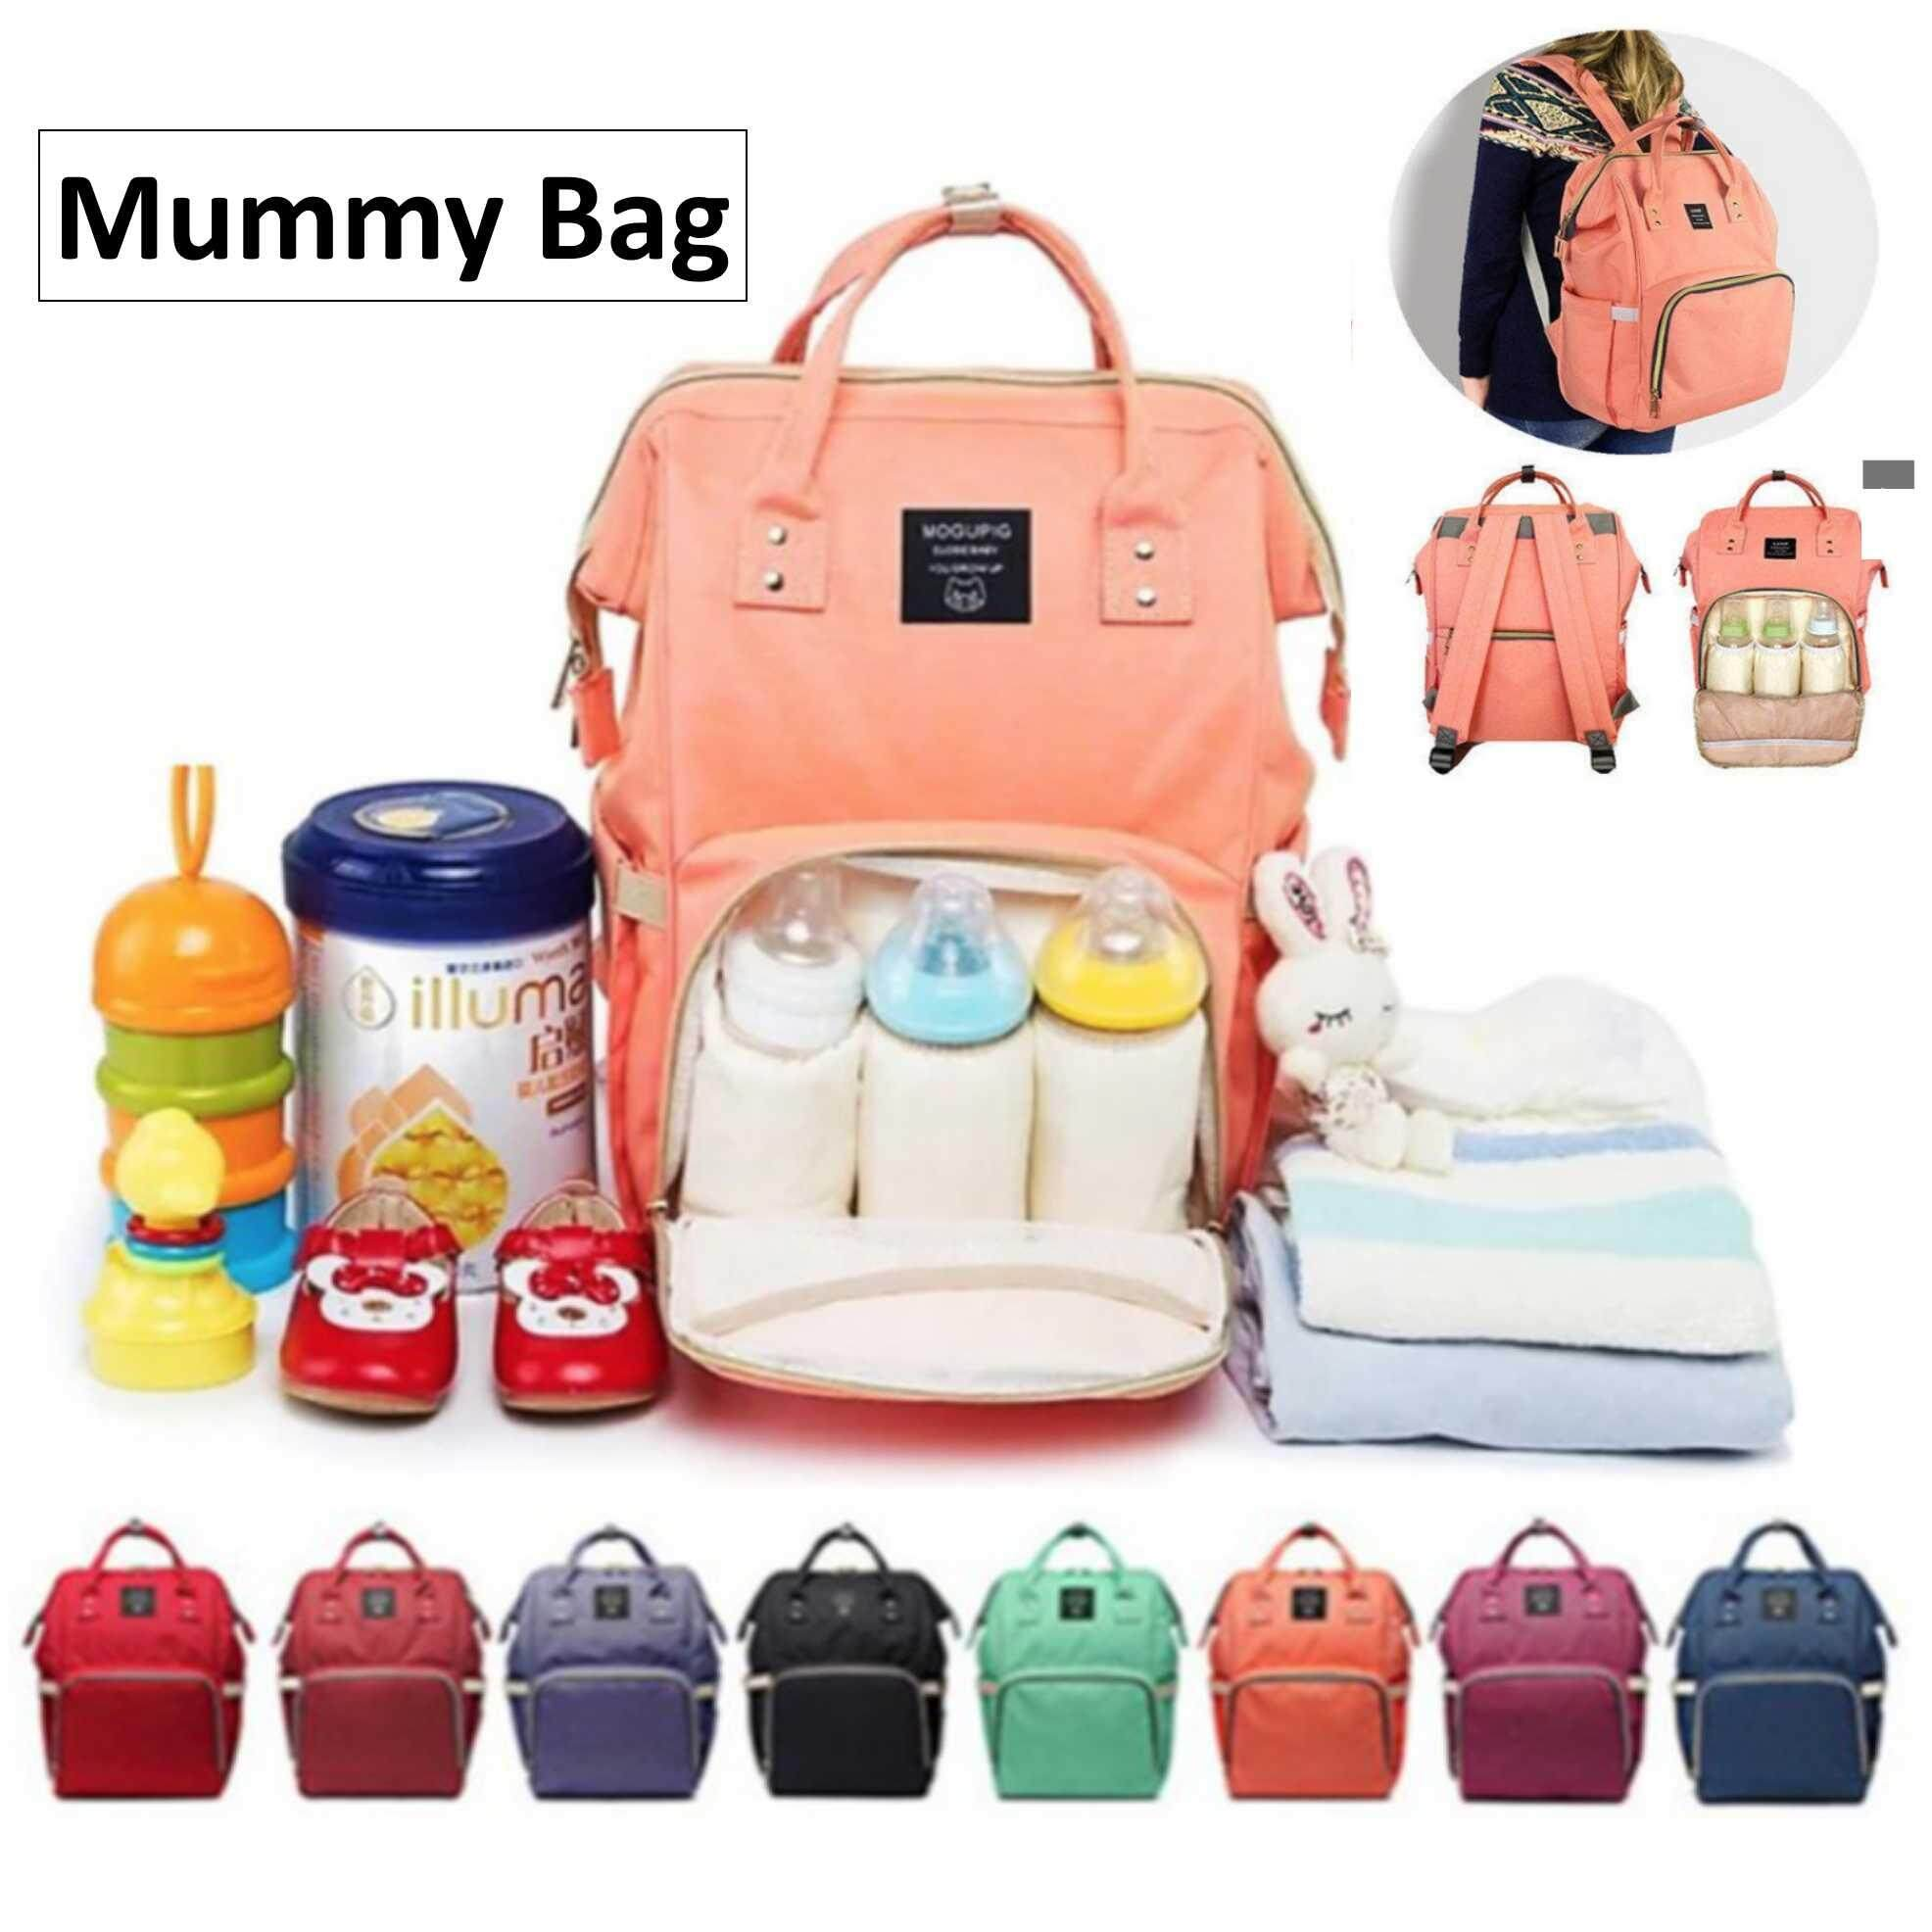 Diaper Bags For The Best Price In Malaysia Babygo Inc Travelling Pouch Organiser Daddy Bag Mummy Large Capacity Multifunctional Backpack